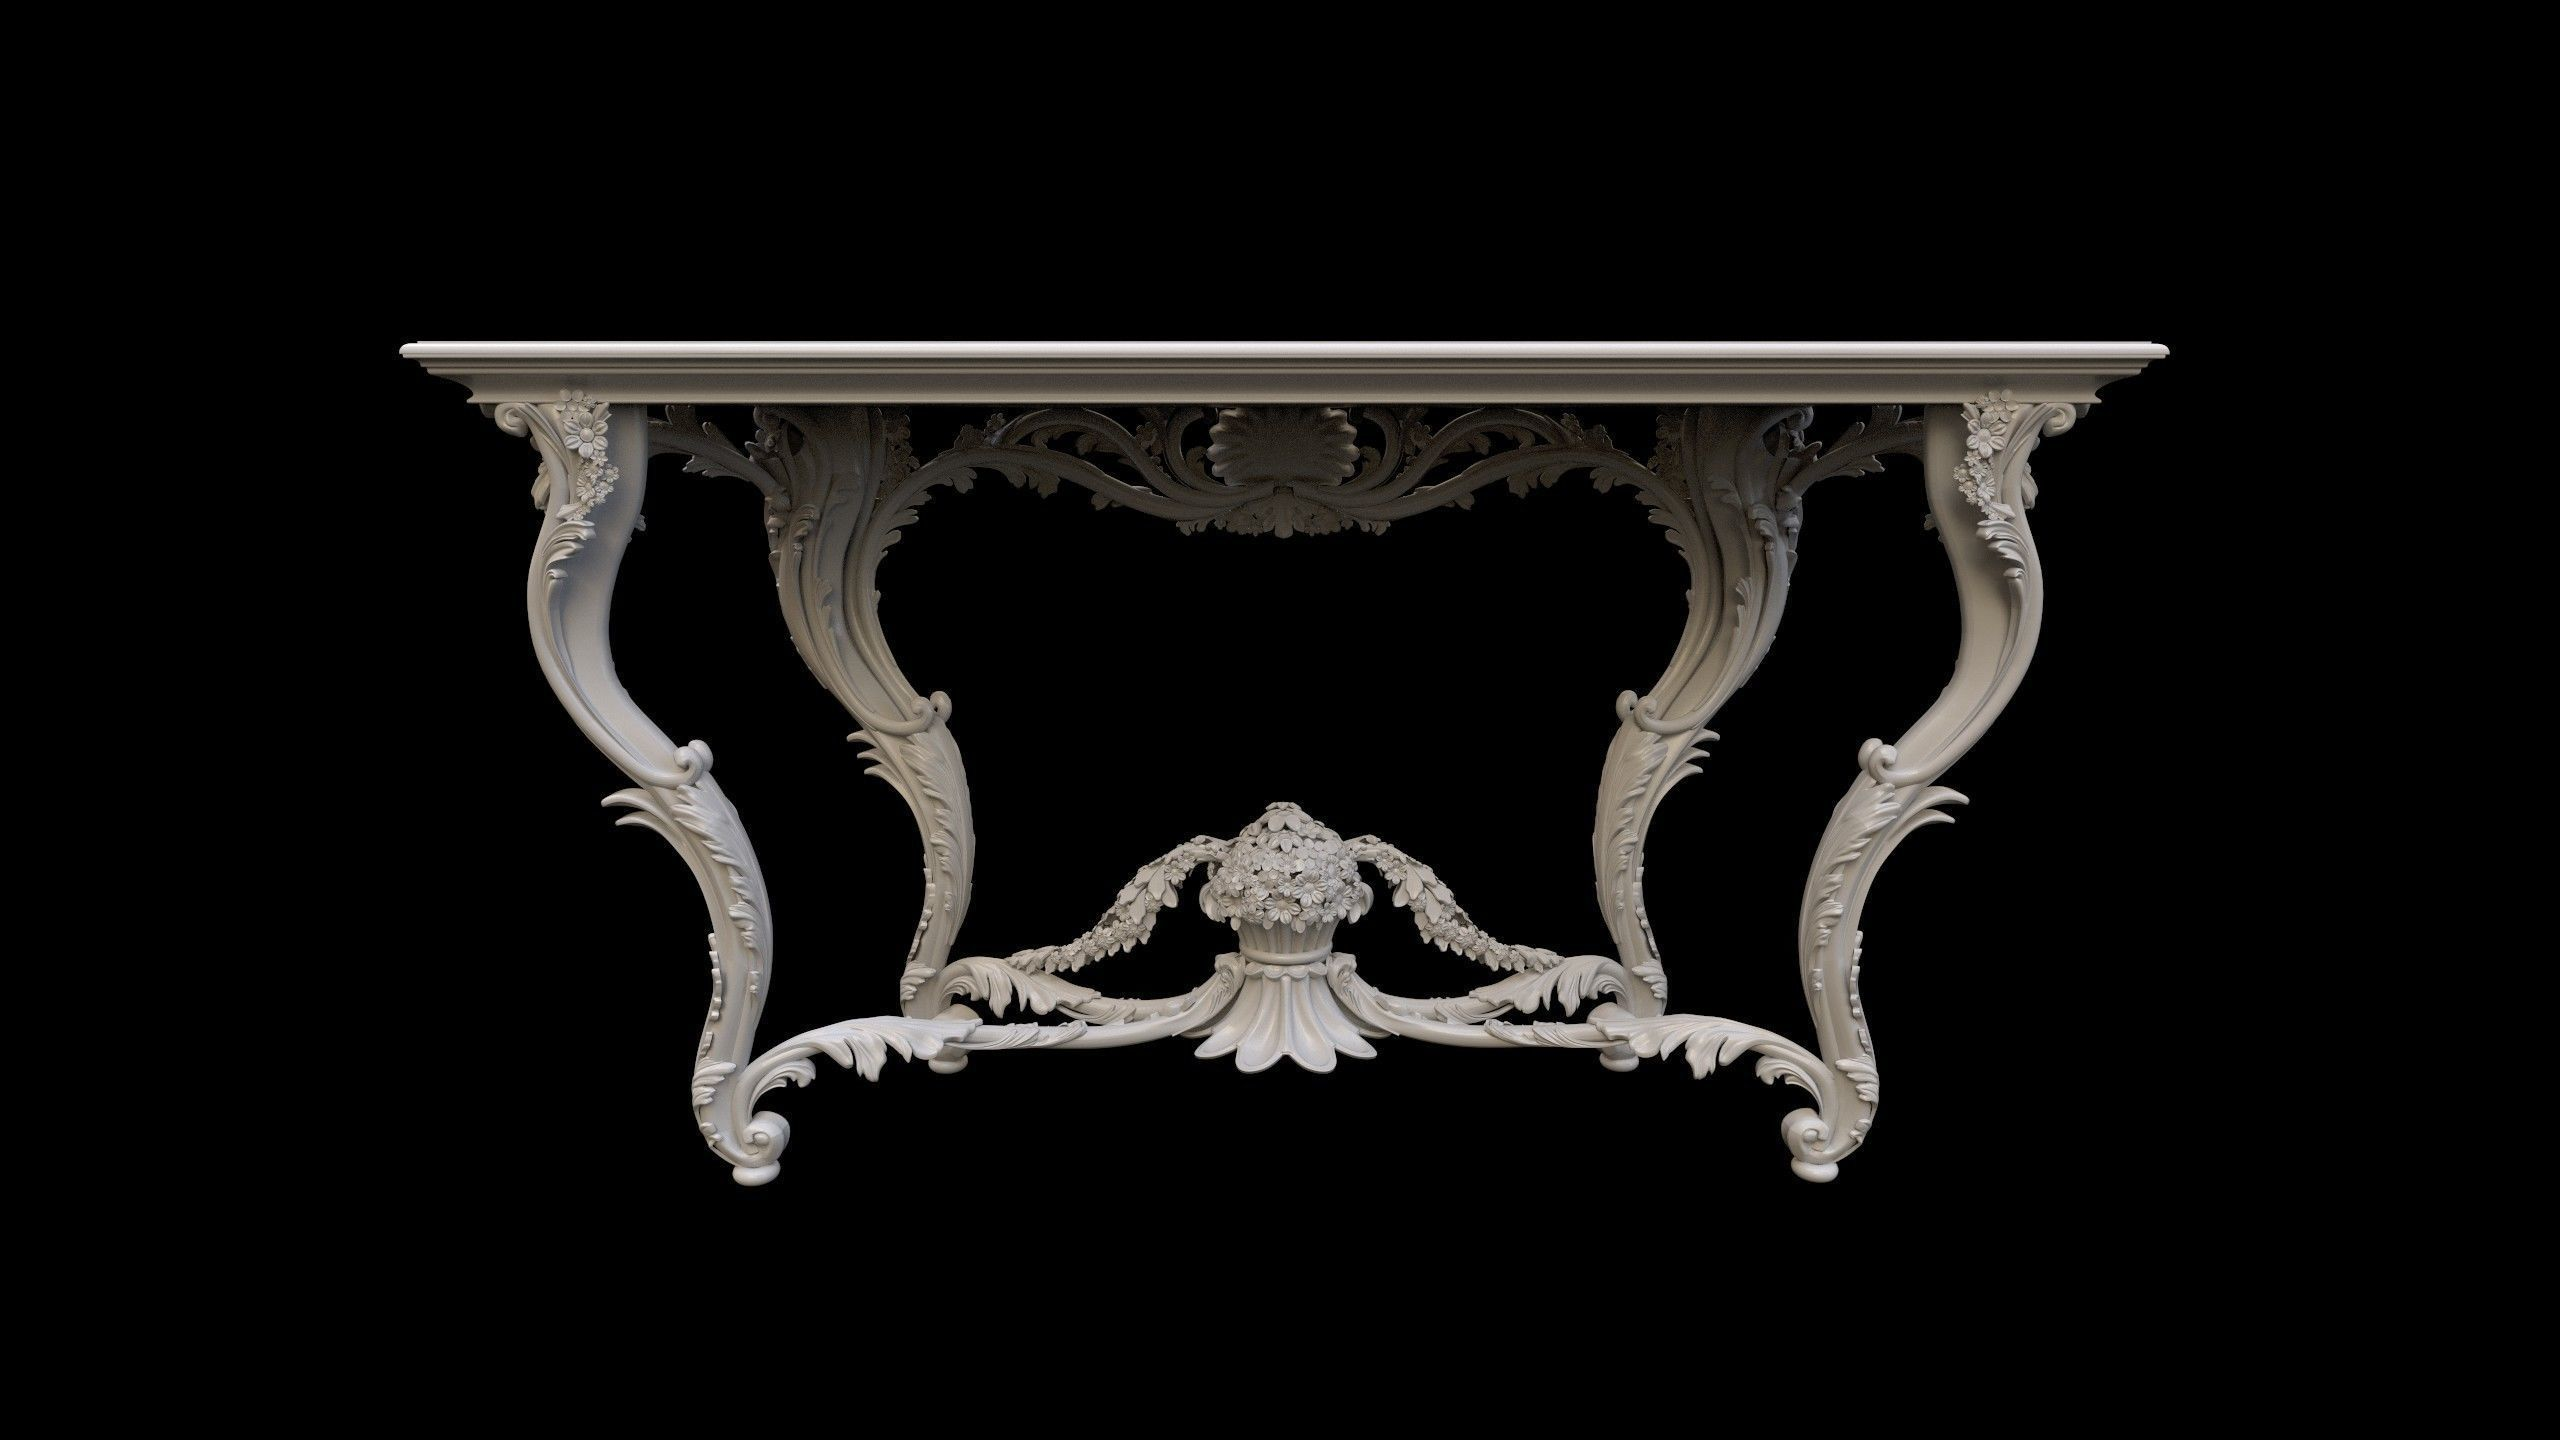 3D Vintage Gothic Marble Table